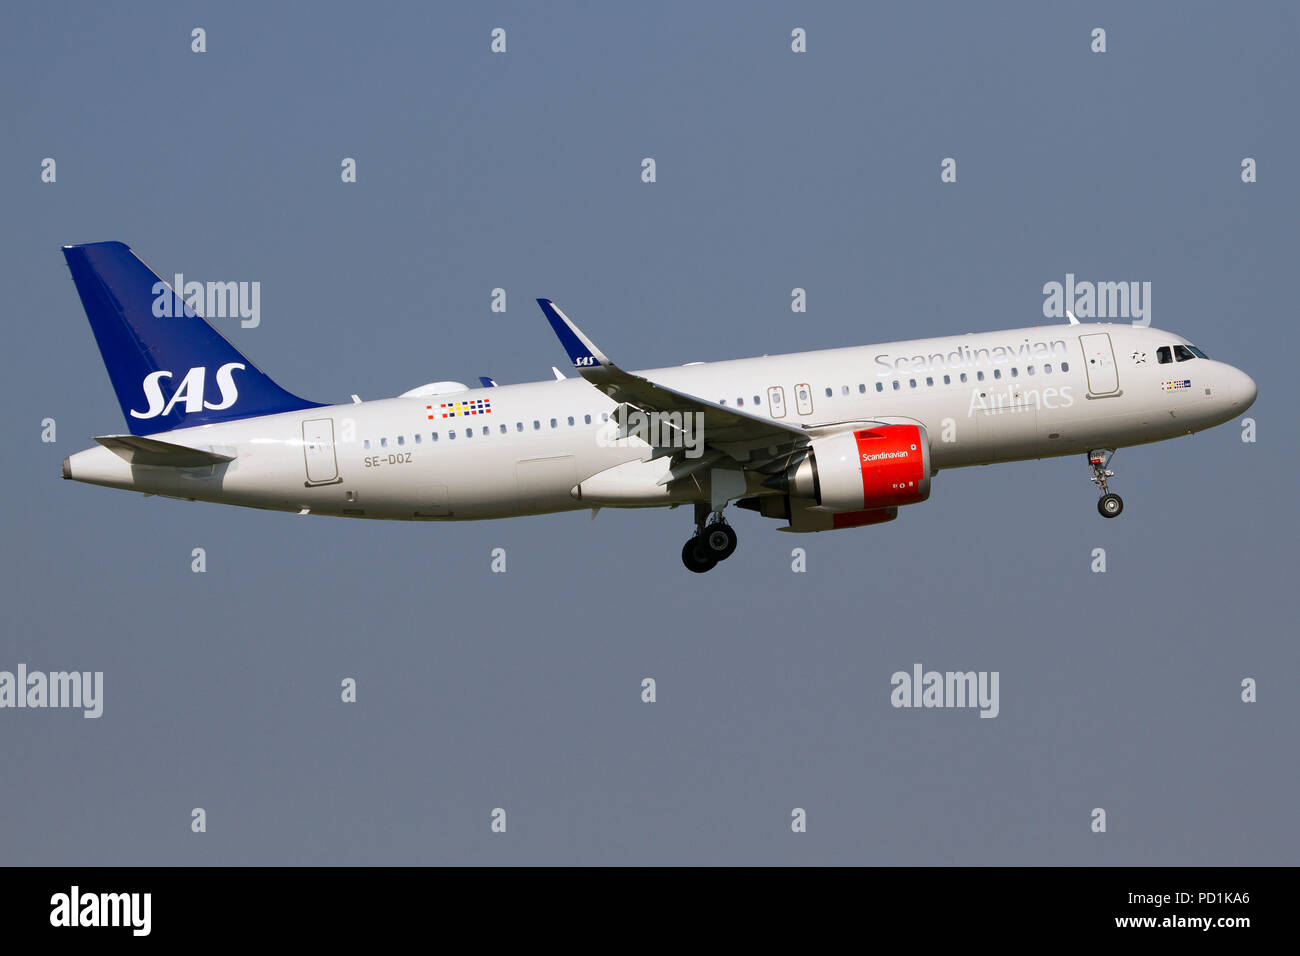 Milan, Italy. 4th Aug, 2018. A Scandinavian Airlines SAS Airbus 320 Neo at Milan Linate airport. Credit: Fabrizio Gandolfo/SOPA Images/ZUMA Wire/Alamy Live News - Stock Image